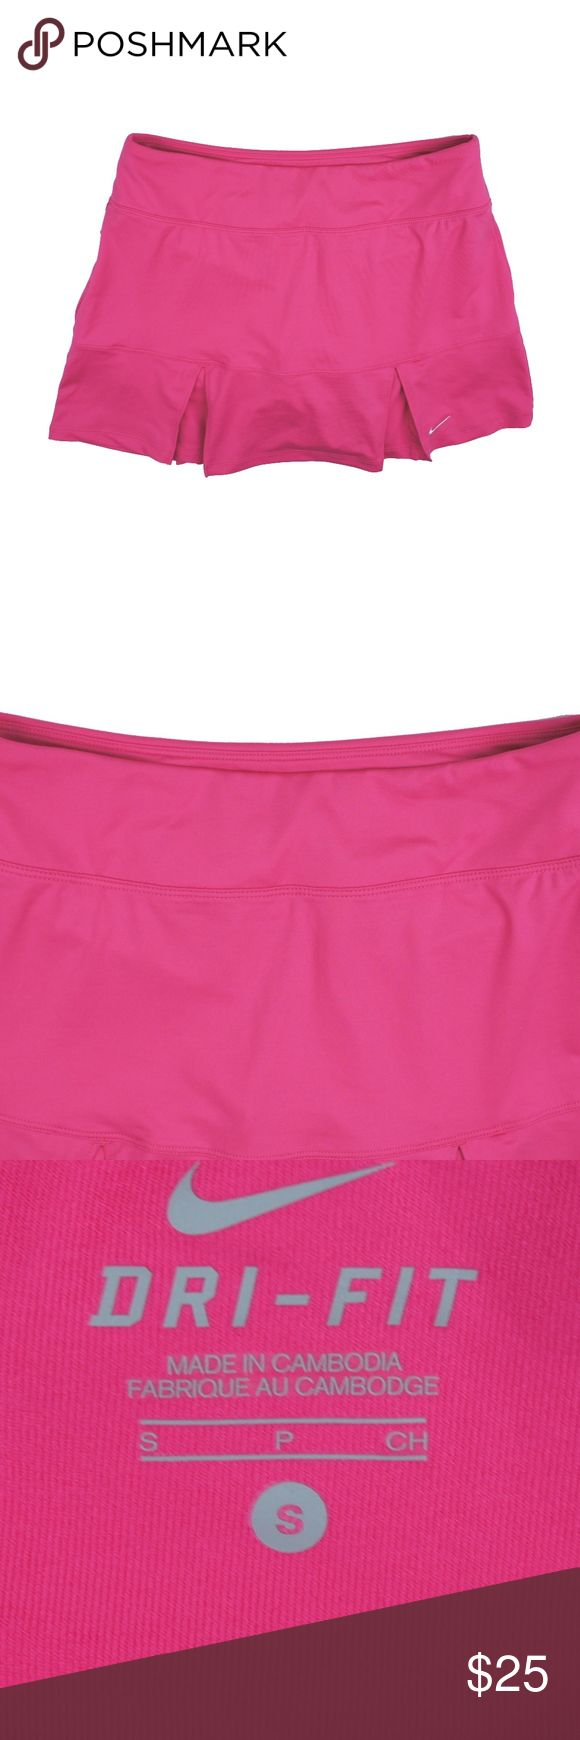 "NIKE Dry Fit Pink Golf Tennis Mini Skirt Skort Size - S  This pink athletic micro mini skirt from NIKE is in excellent condition. Features an elastic banded waist and built in shorts underneath. Polyester & Lycra  Measures:  Waist: 27-30"" (stretches)  Total length: 13"" Nike Shorts Skorts"